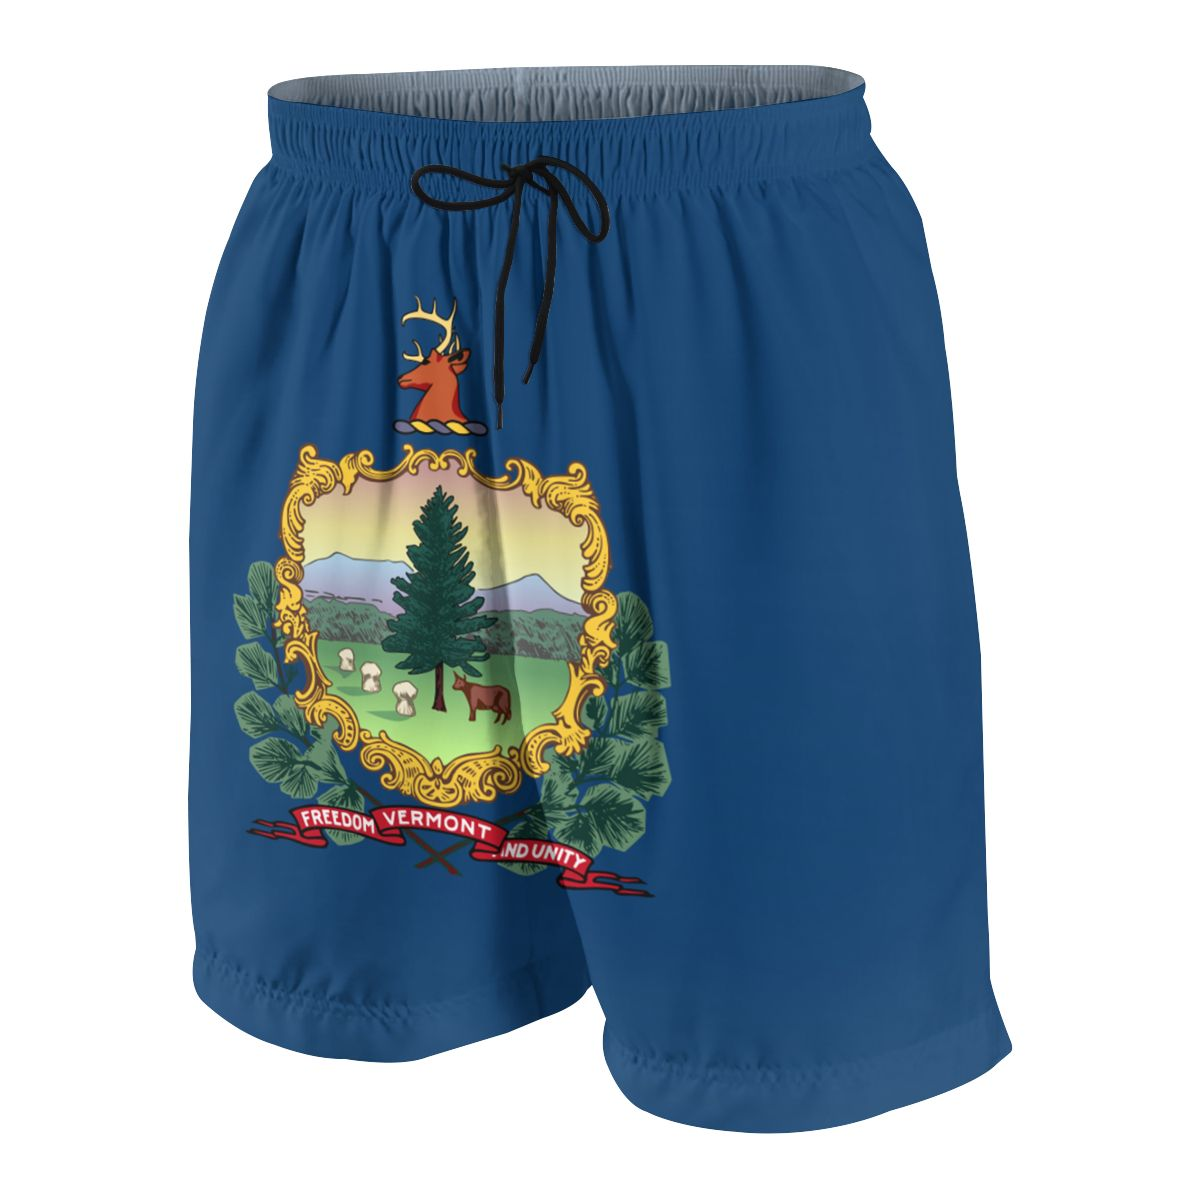 Vermont Flag Youngsters Shorts Joggers Quick-dry Cool Short Pants Casual Beach Sweatpants